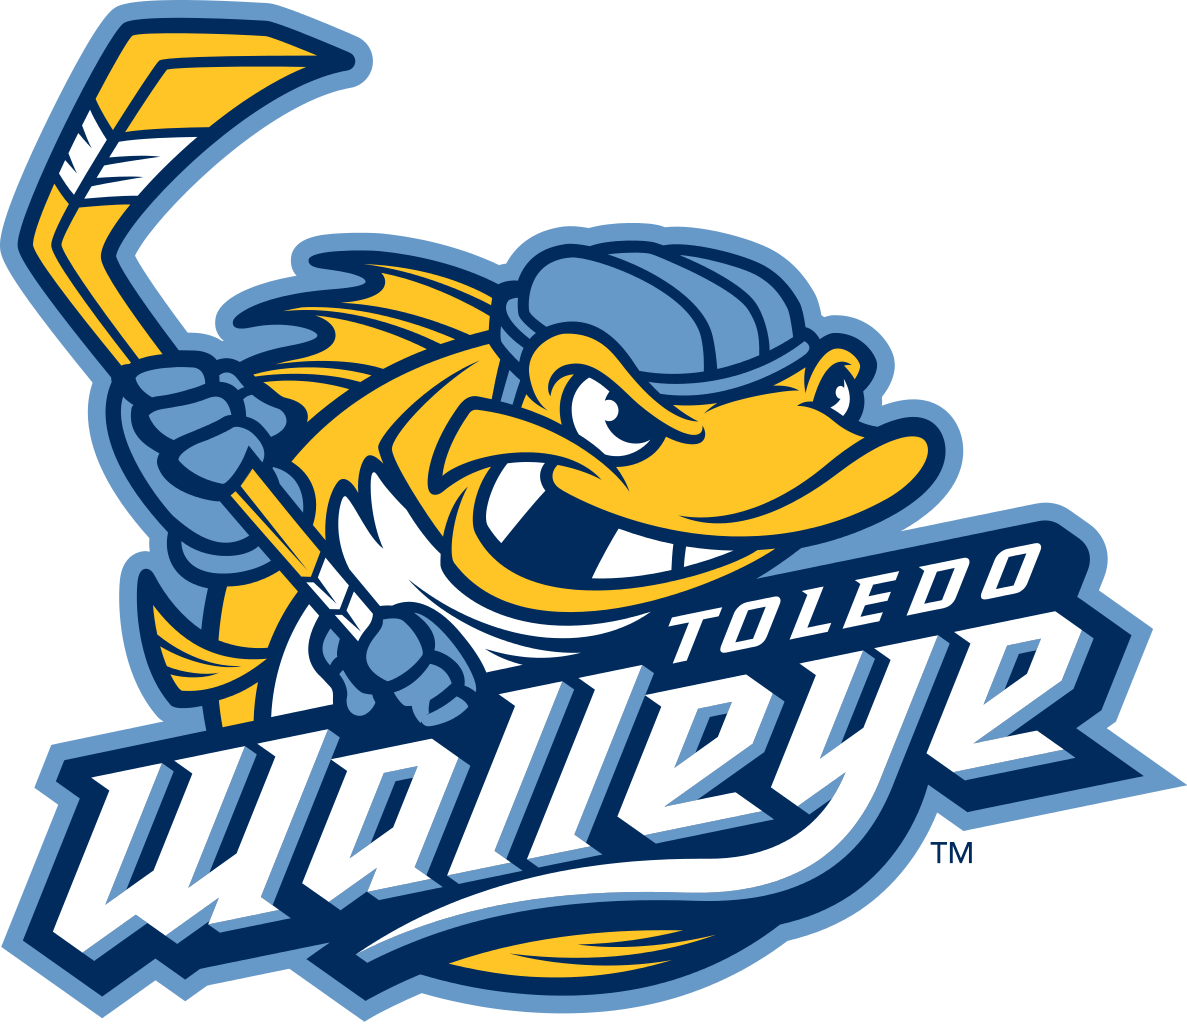 walleye.logo